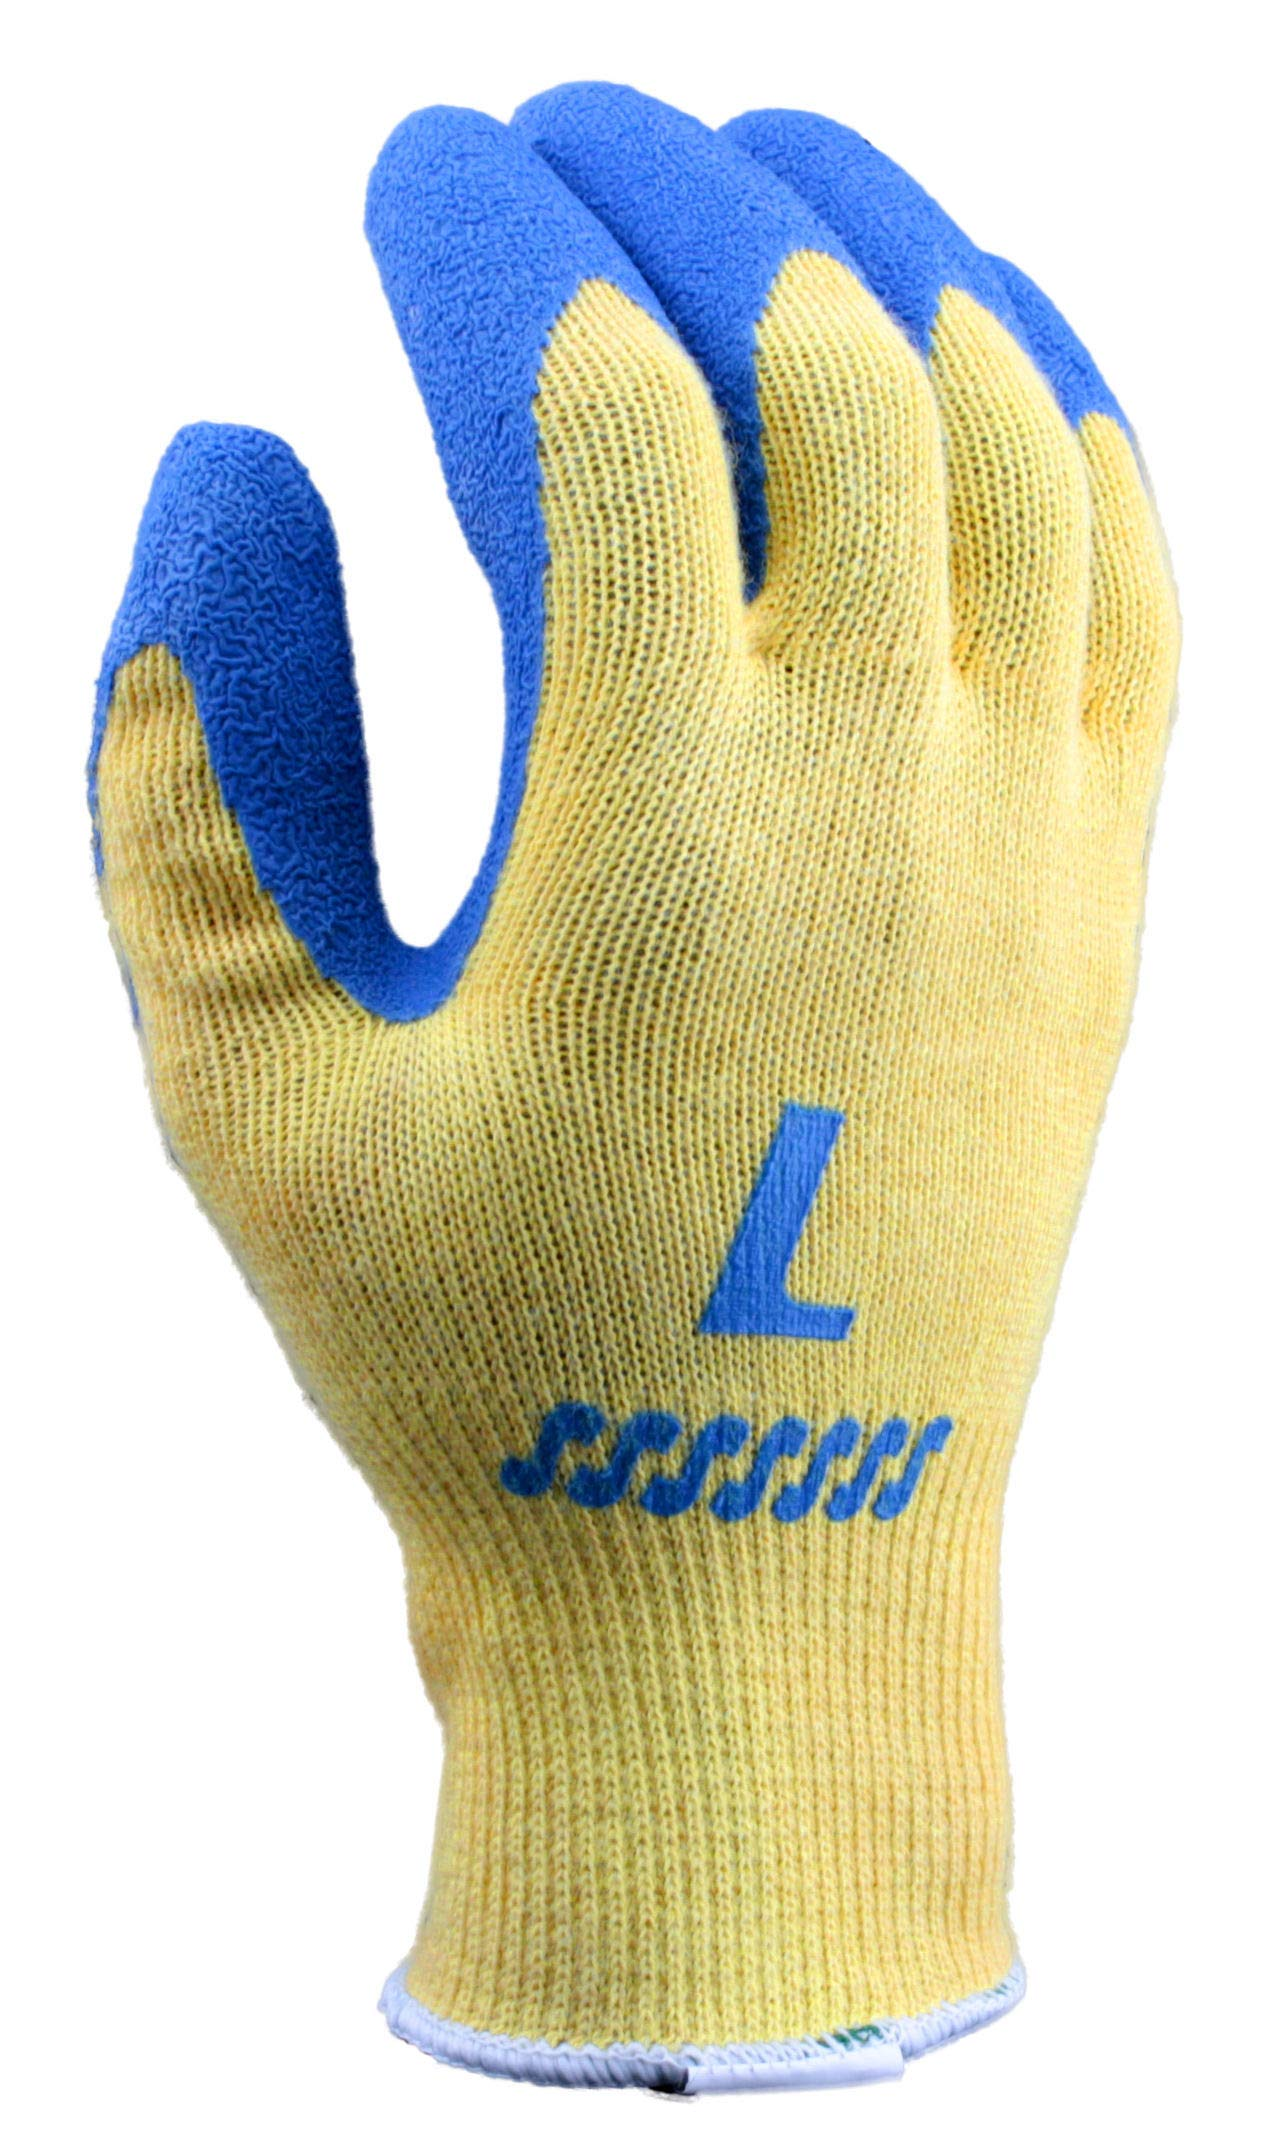 Stauffer Kevlar Glove with Blue Crinkle Rubber Coating, Cut Level A2, Large, (Pack of 12) by Stauffer Glove & Safety (Image #3)